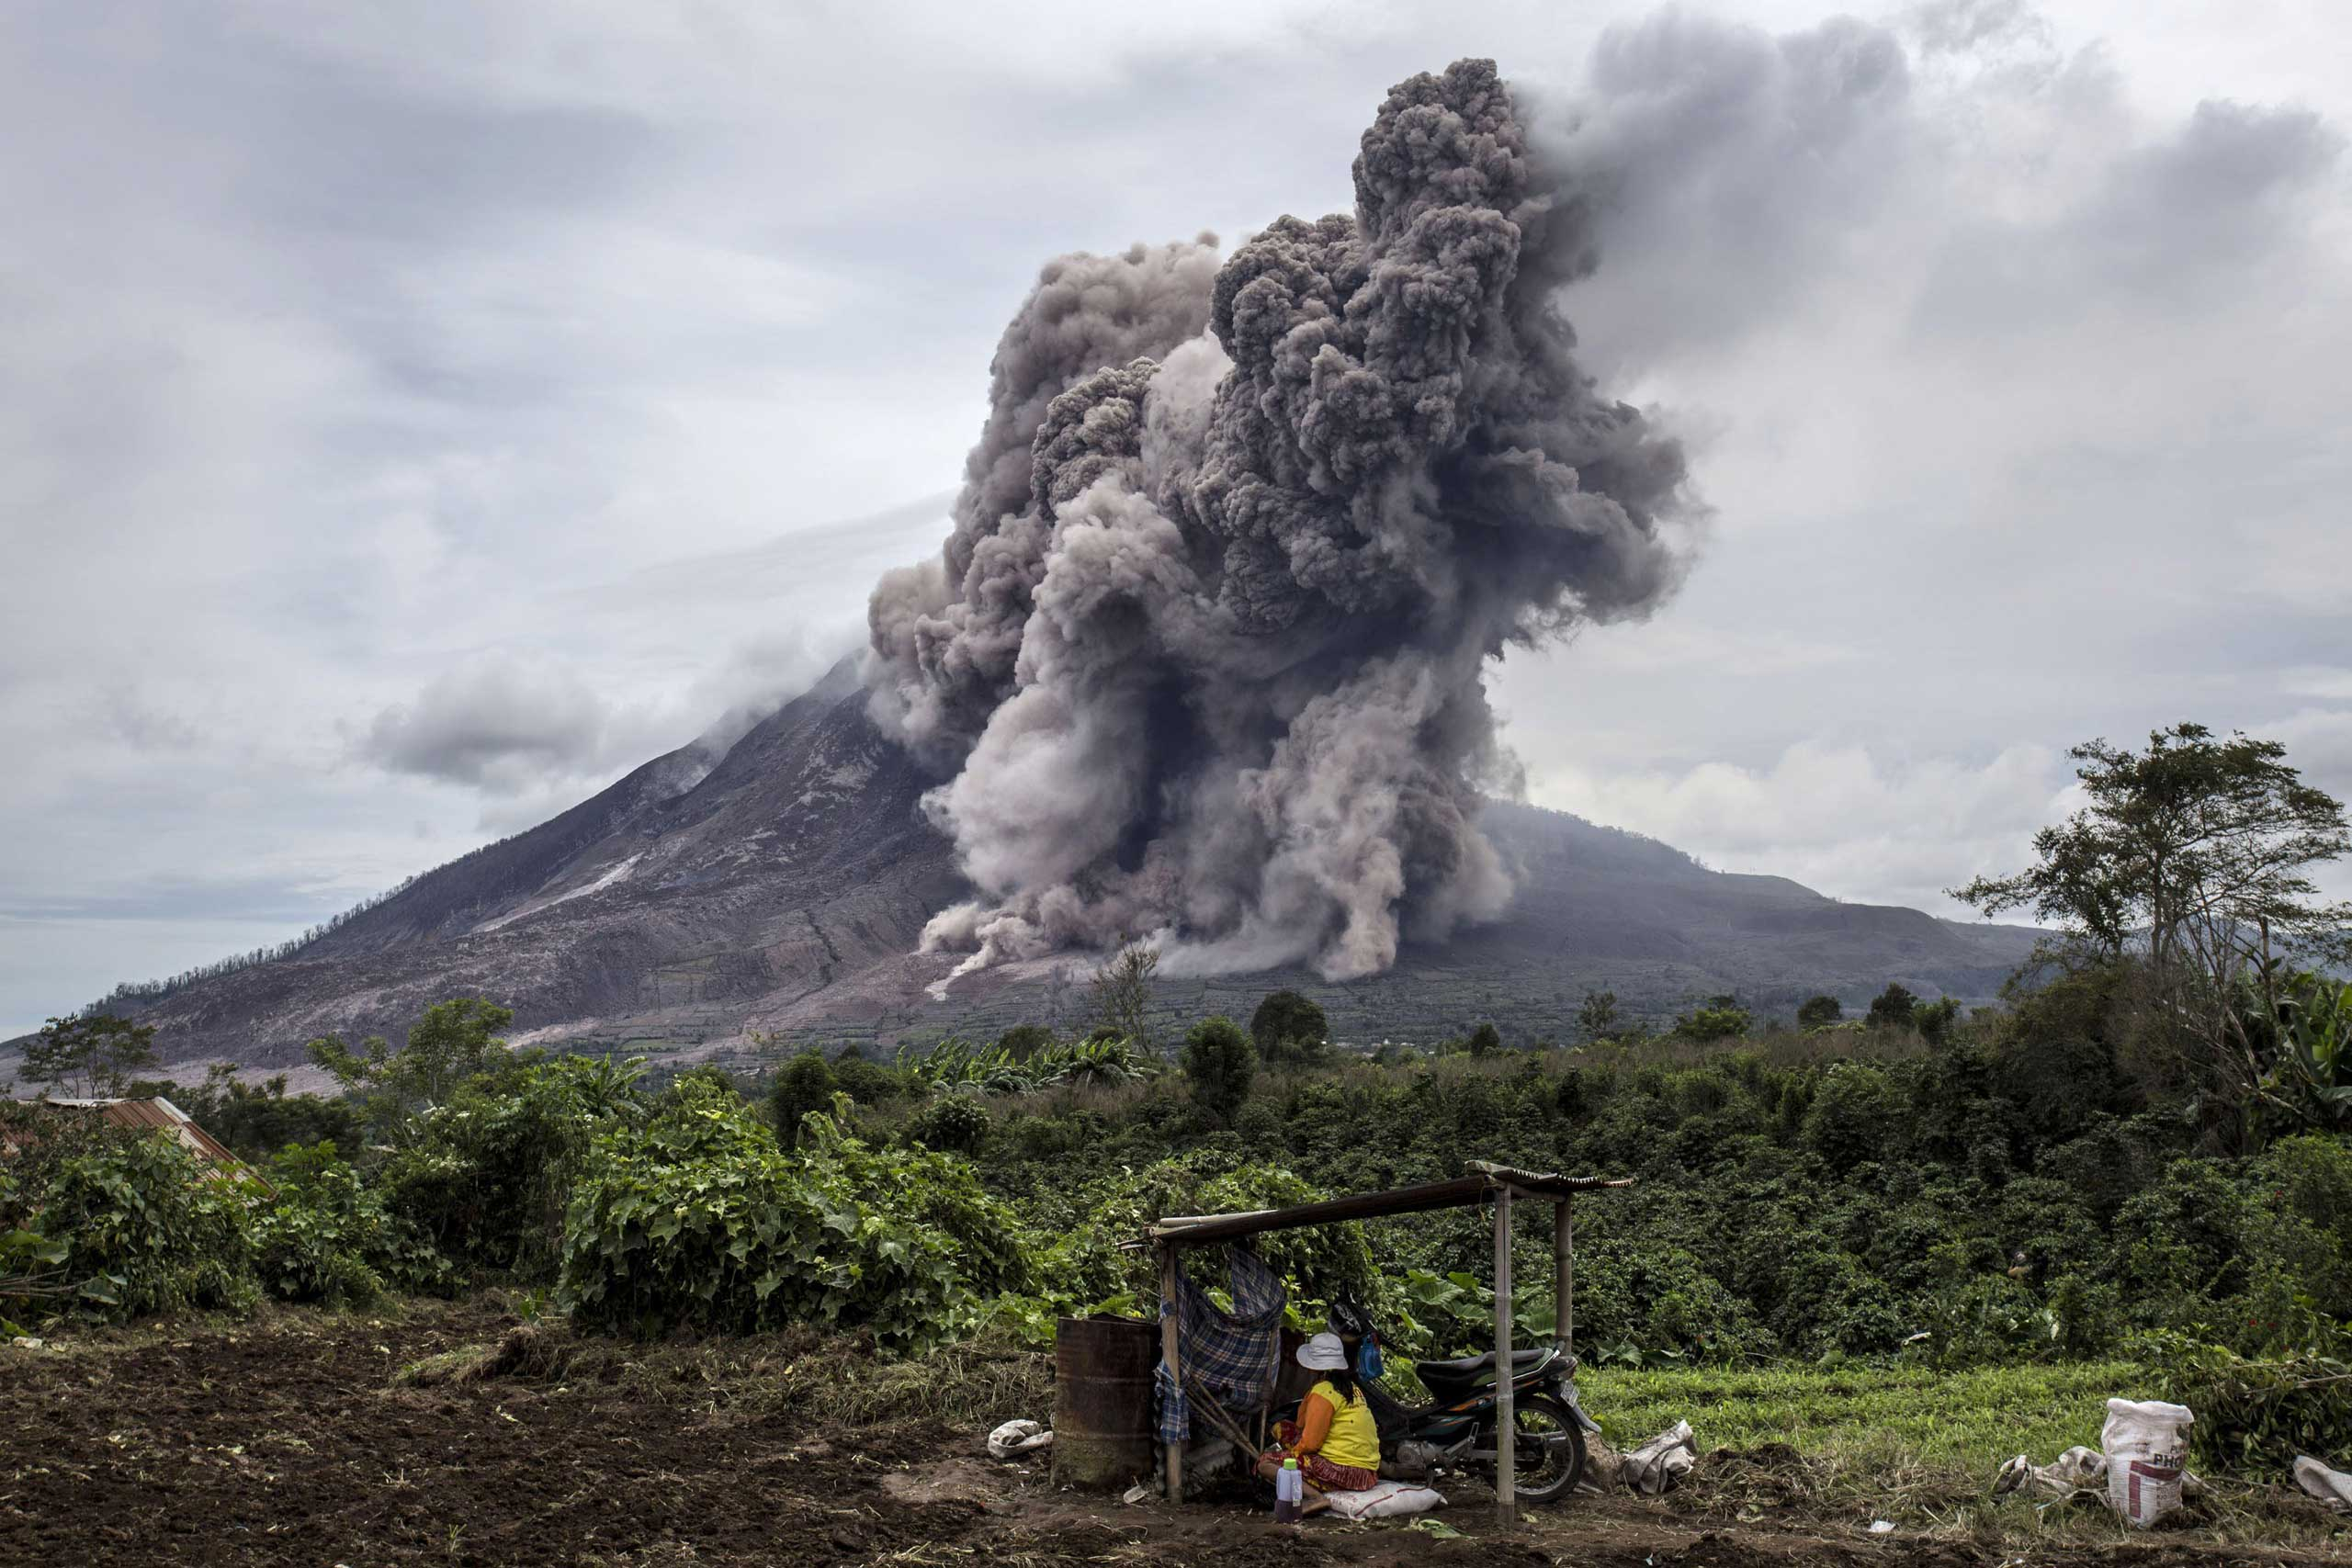 A local farmer sits on her fields as Mount Sinabung spews pyroclastic smoke, seen from Tiga Kicat village  in Sukanalu village, North Sumatra, Indonesia on June 17, 2015.